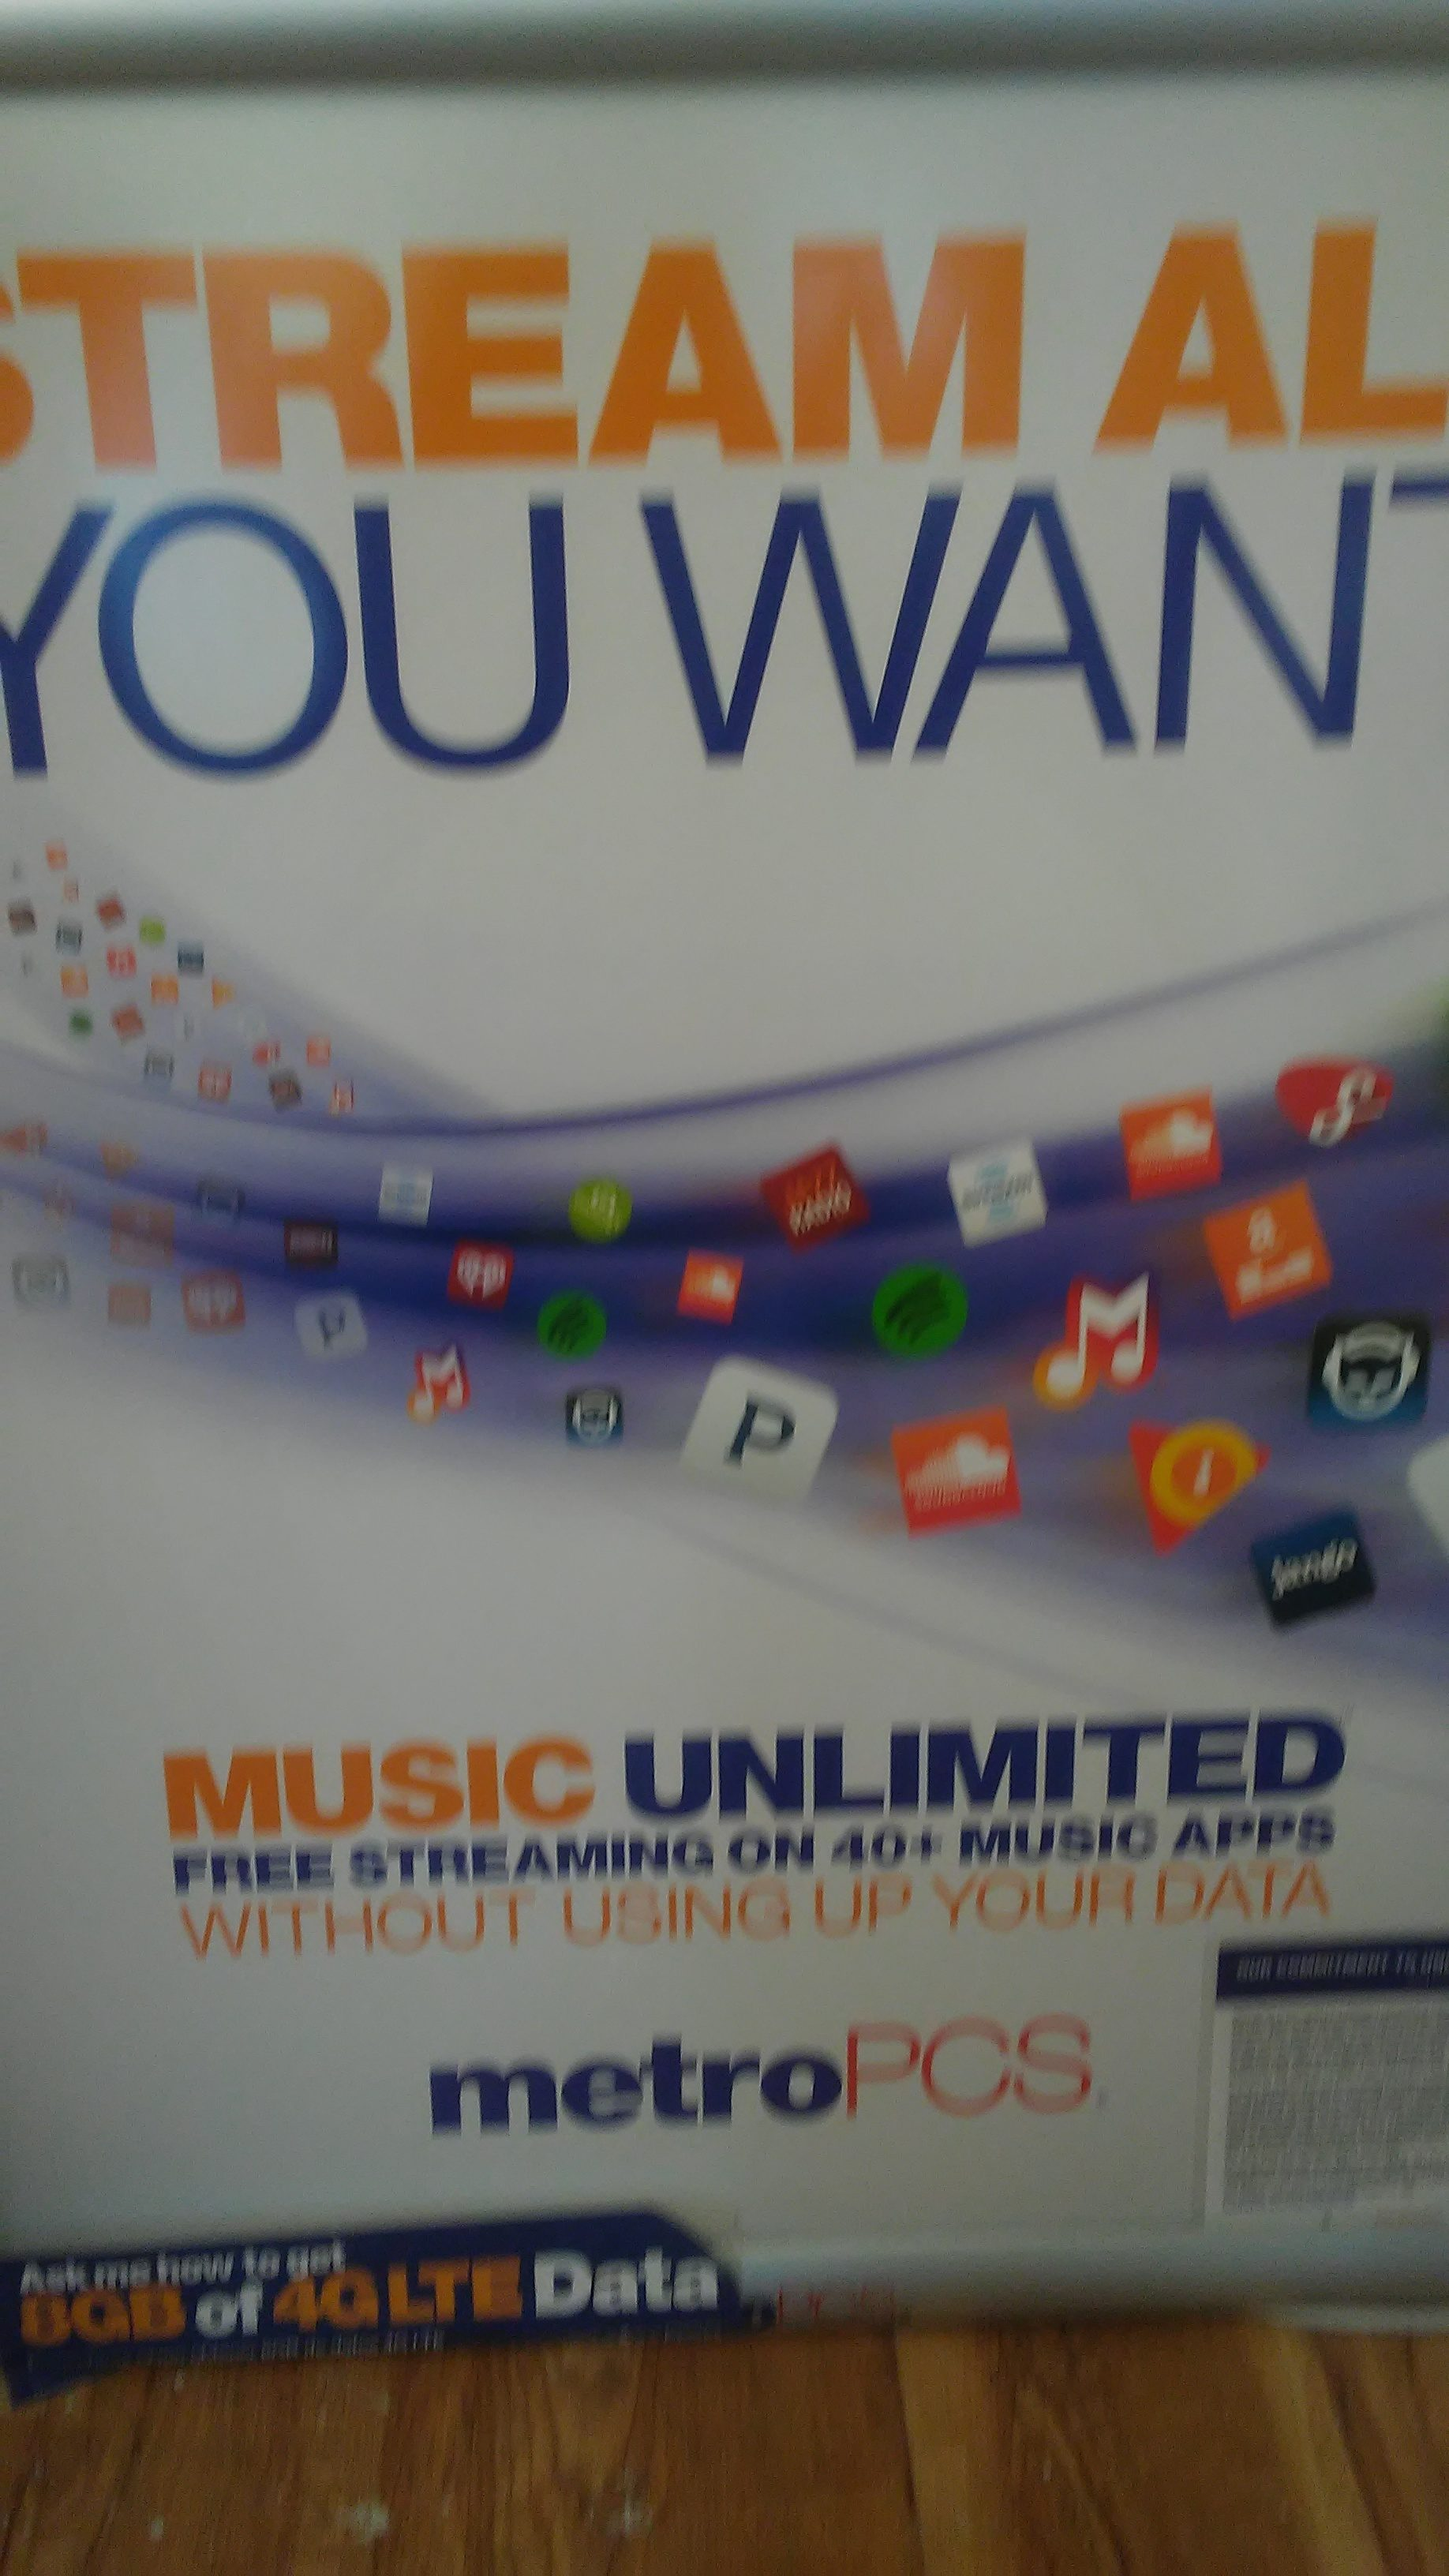 top complaints and reviews about metro pcs page  i ve been a customer for 6 months i got the family plan two lines 6 gb unlimited music but my pandora was eating all my data and ten days